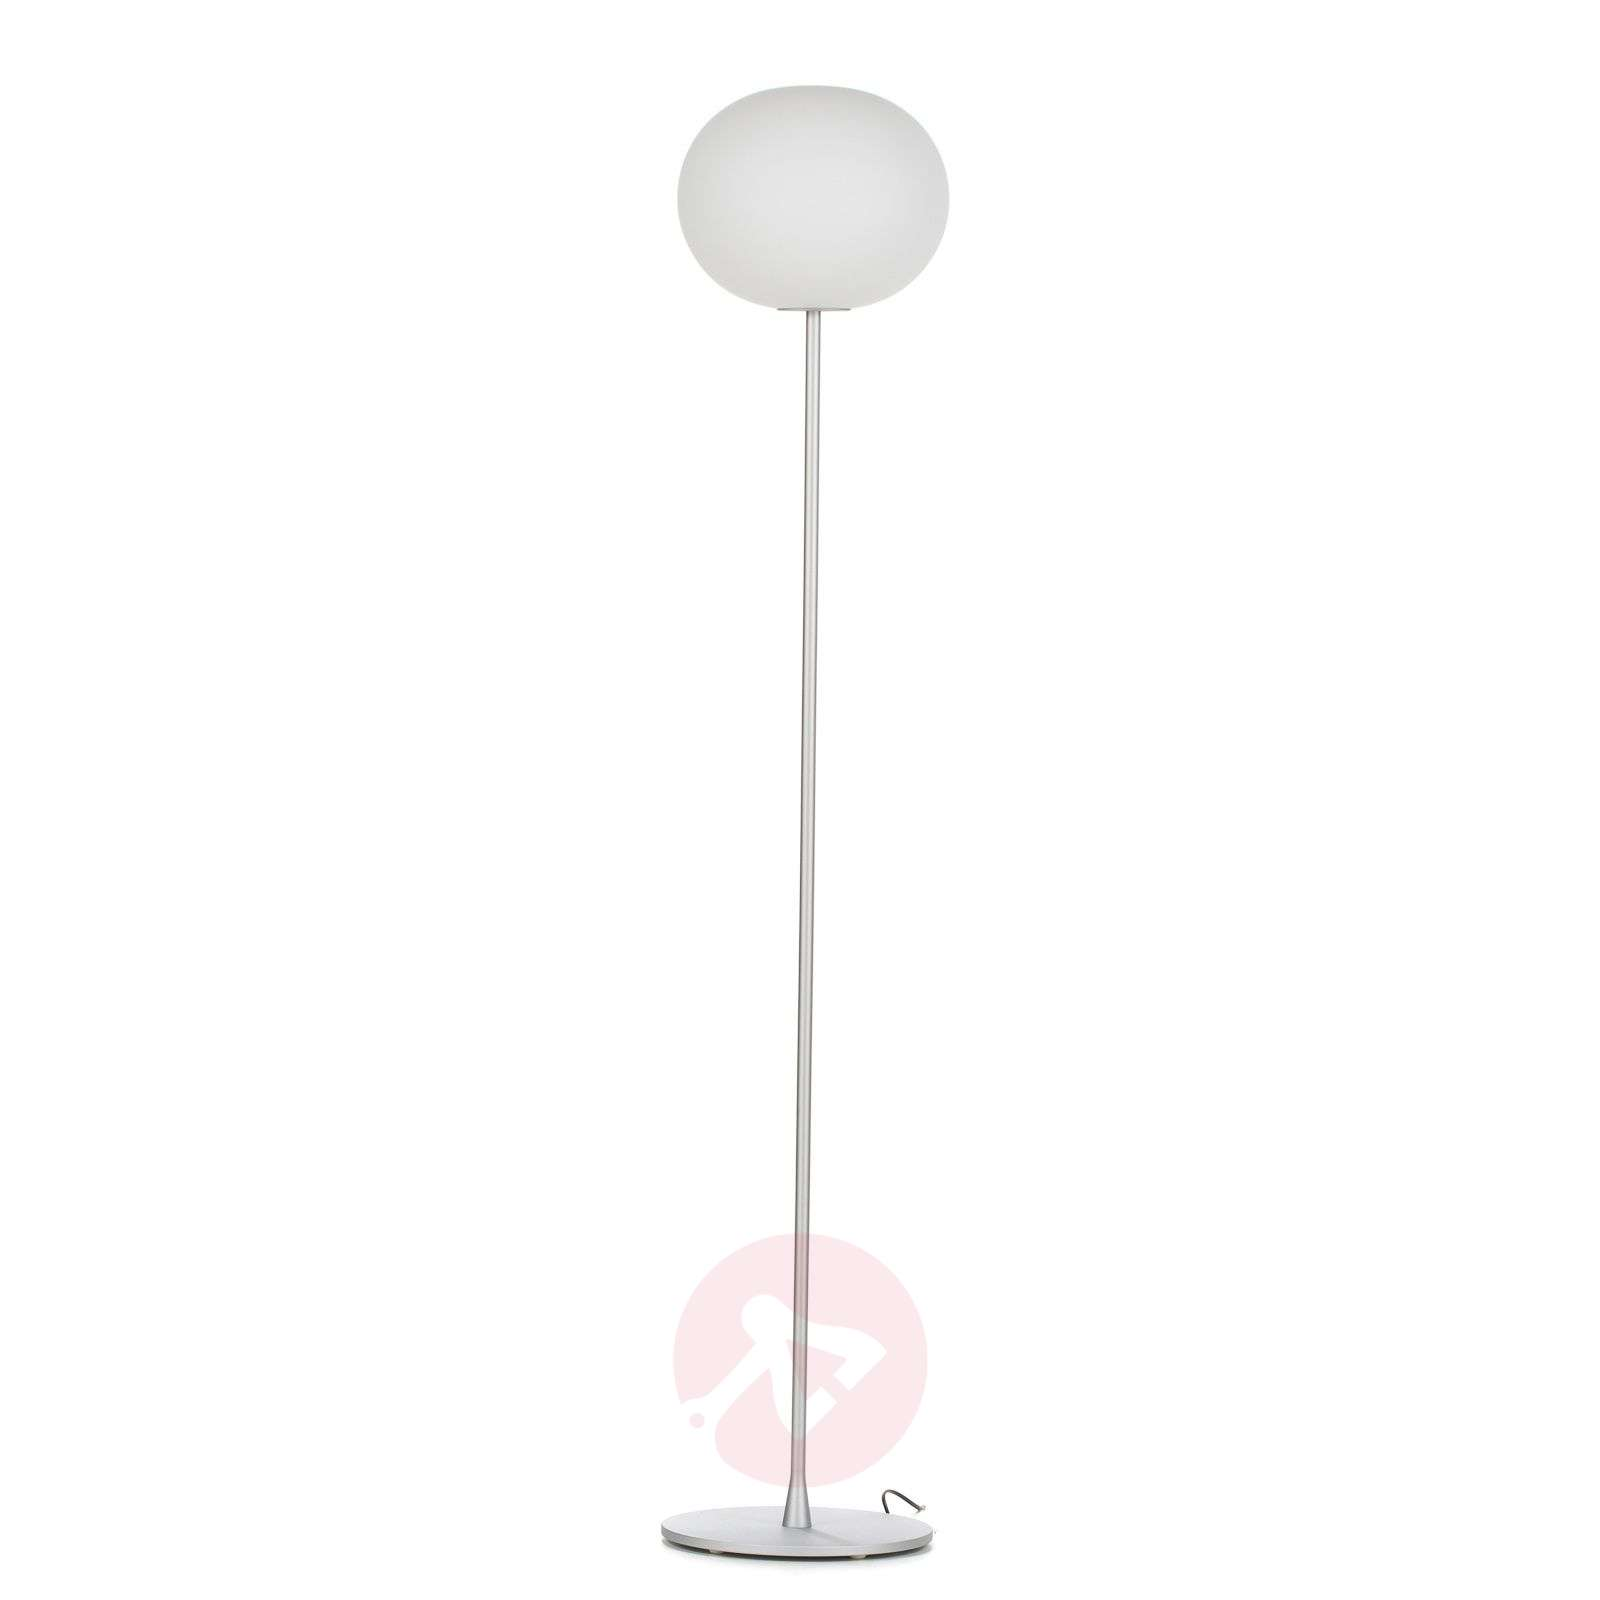 Lampadaire design Glo-Ball F2 by FLOS-3510147-03